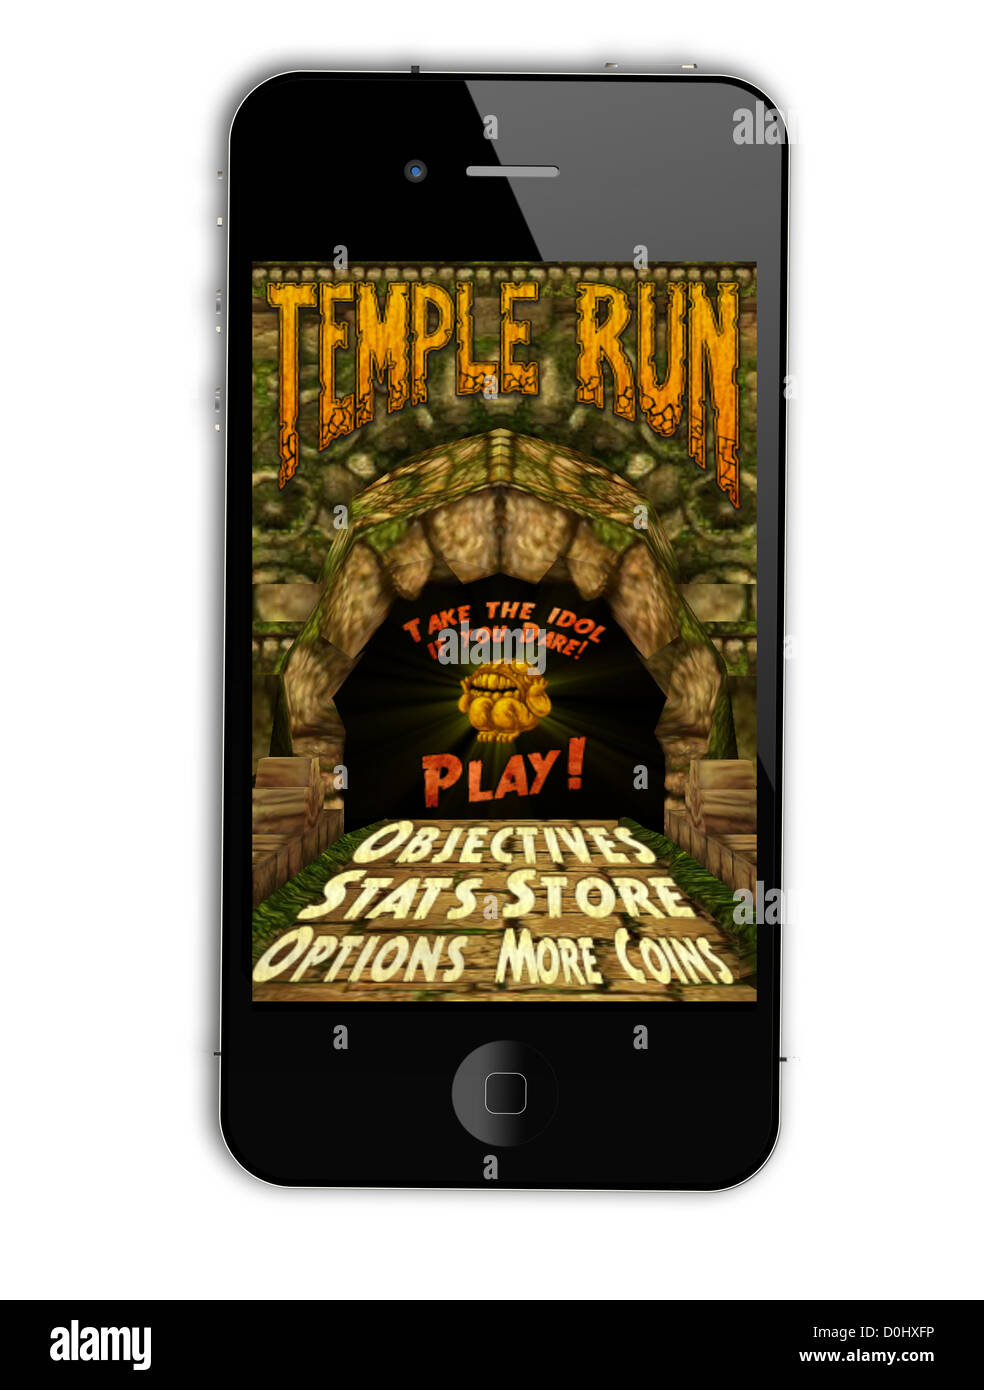 Temple Run - a popular game in iPhone game market - Stock Image